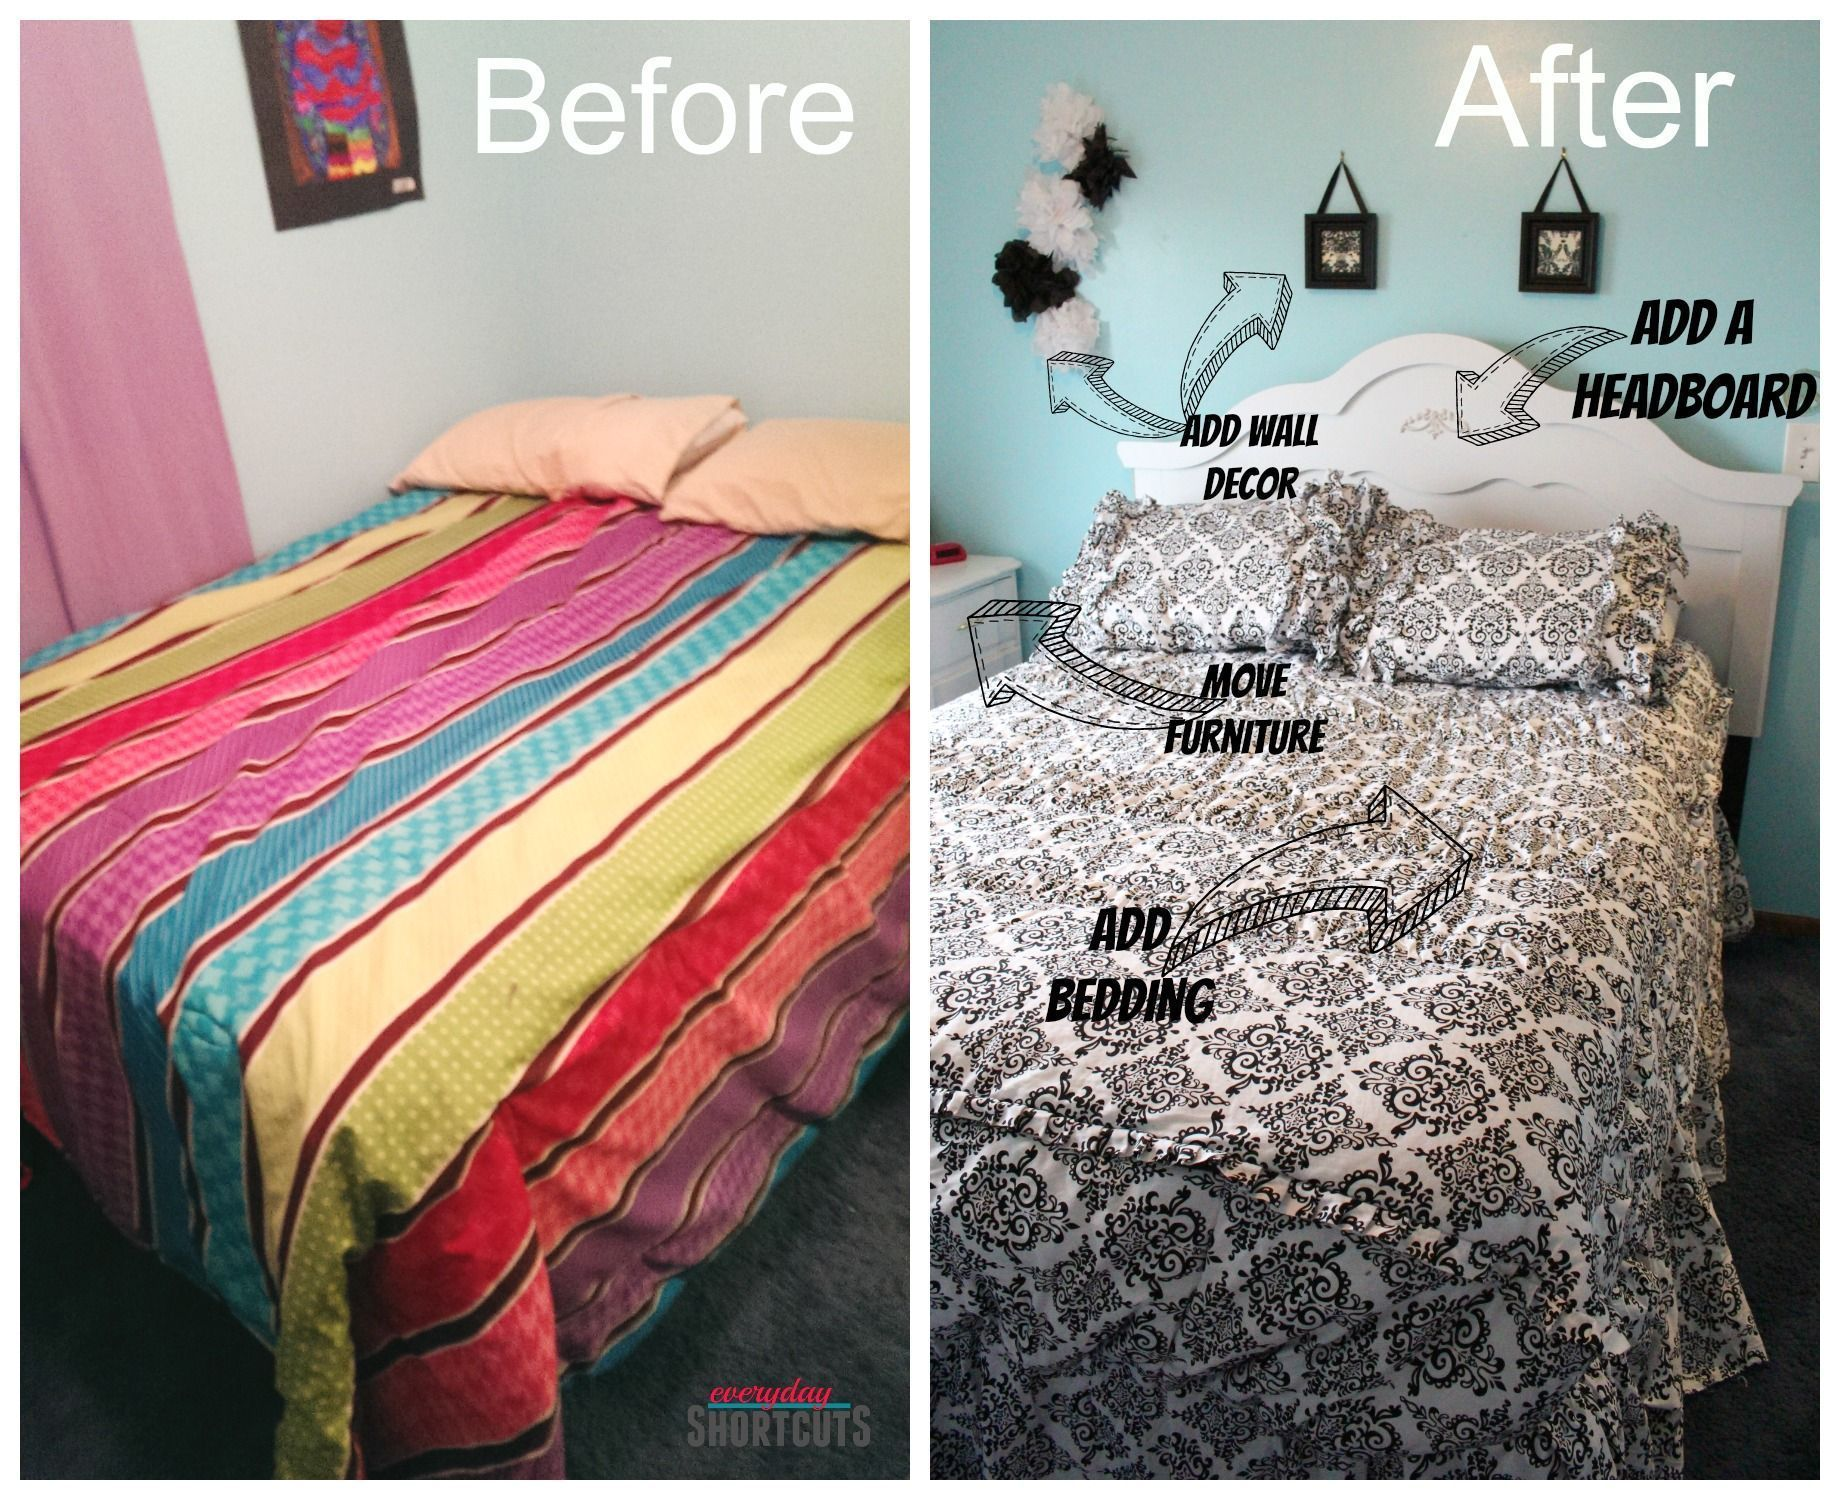 Teen Bedroom Makeover with Beddy's Zipper Bedding #beddysbedding beddys bedding teen room makeover. Zipper bedding is perfect for teens that don't want to make their beds! #beddysbedding Teen Bedroom Makeover with Beddy's Zipper Bedding #beddysbedding beddys bedding teen room makeover. Zipper bedding is perfect for teens that don't want to make their beds! #beddysbedding Teen Bedroom Makeover with Beddy's Zipper Bedding #beddysbedding beddys bedding teen room makeover. Zipper bedding is perfect #beddysbedding